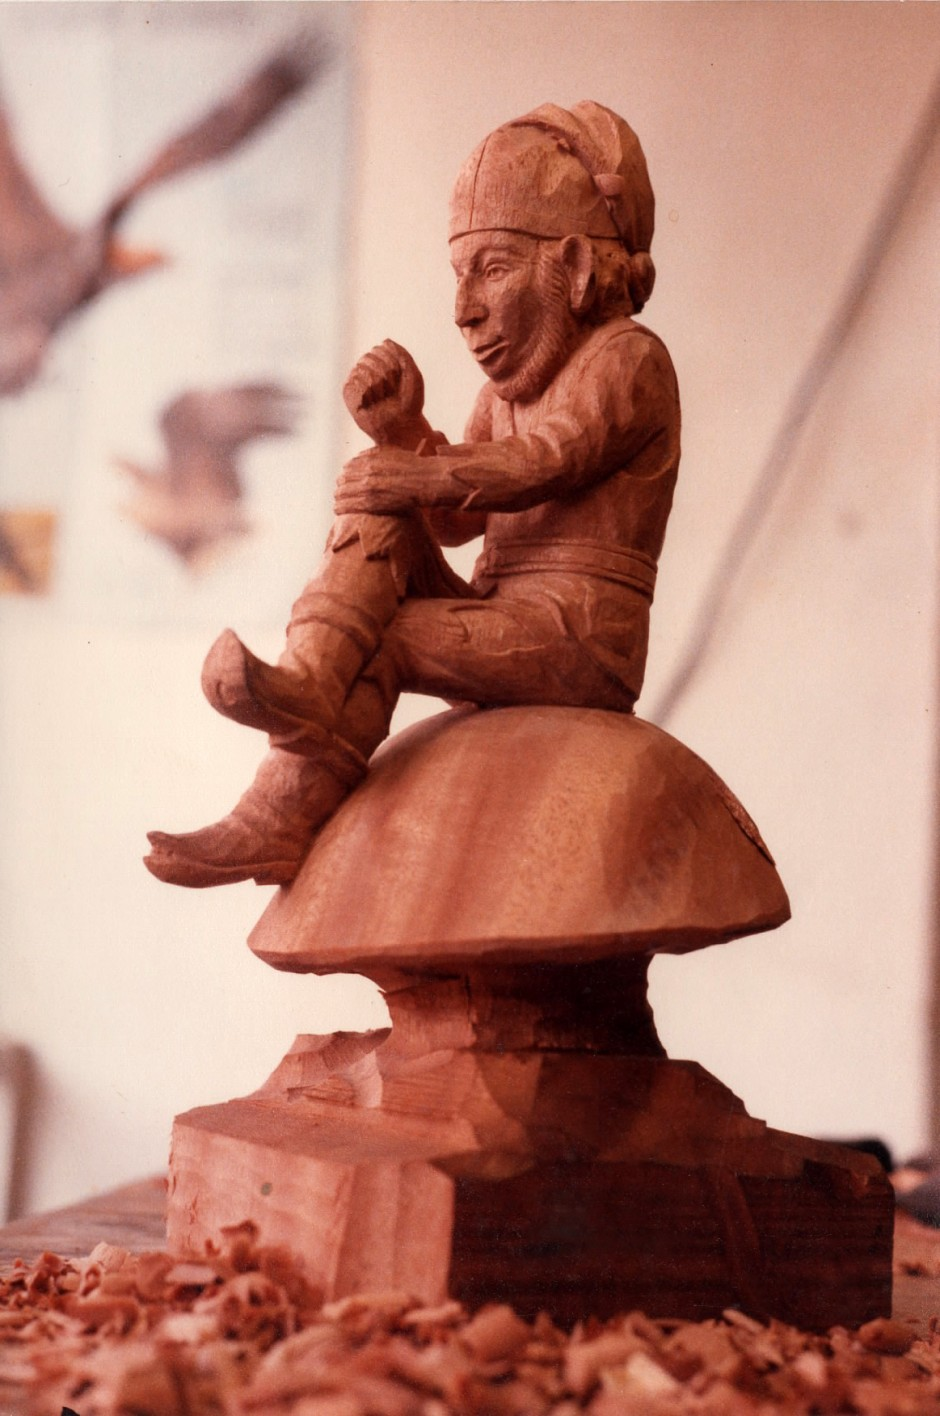 Three Quarter View Of The Gnome On His Toadstool - gnome, wood carving, wood carver